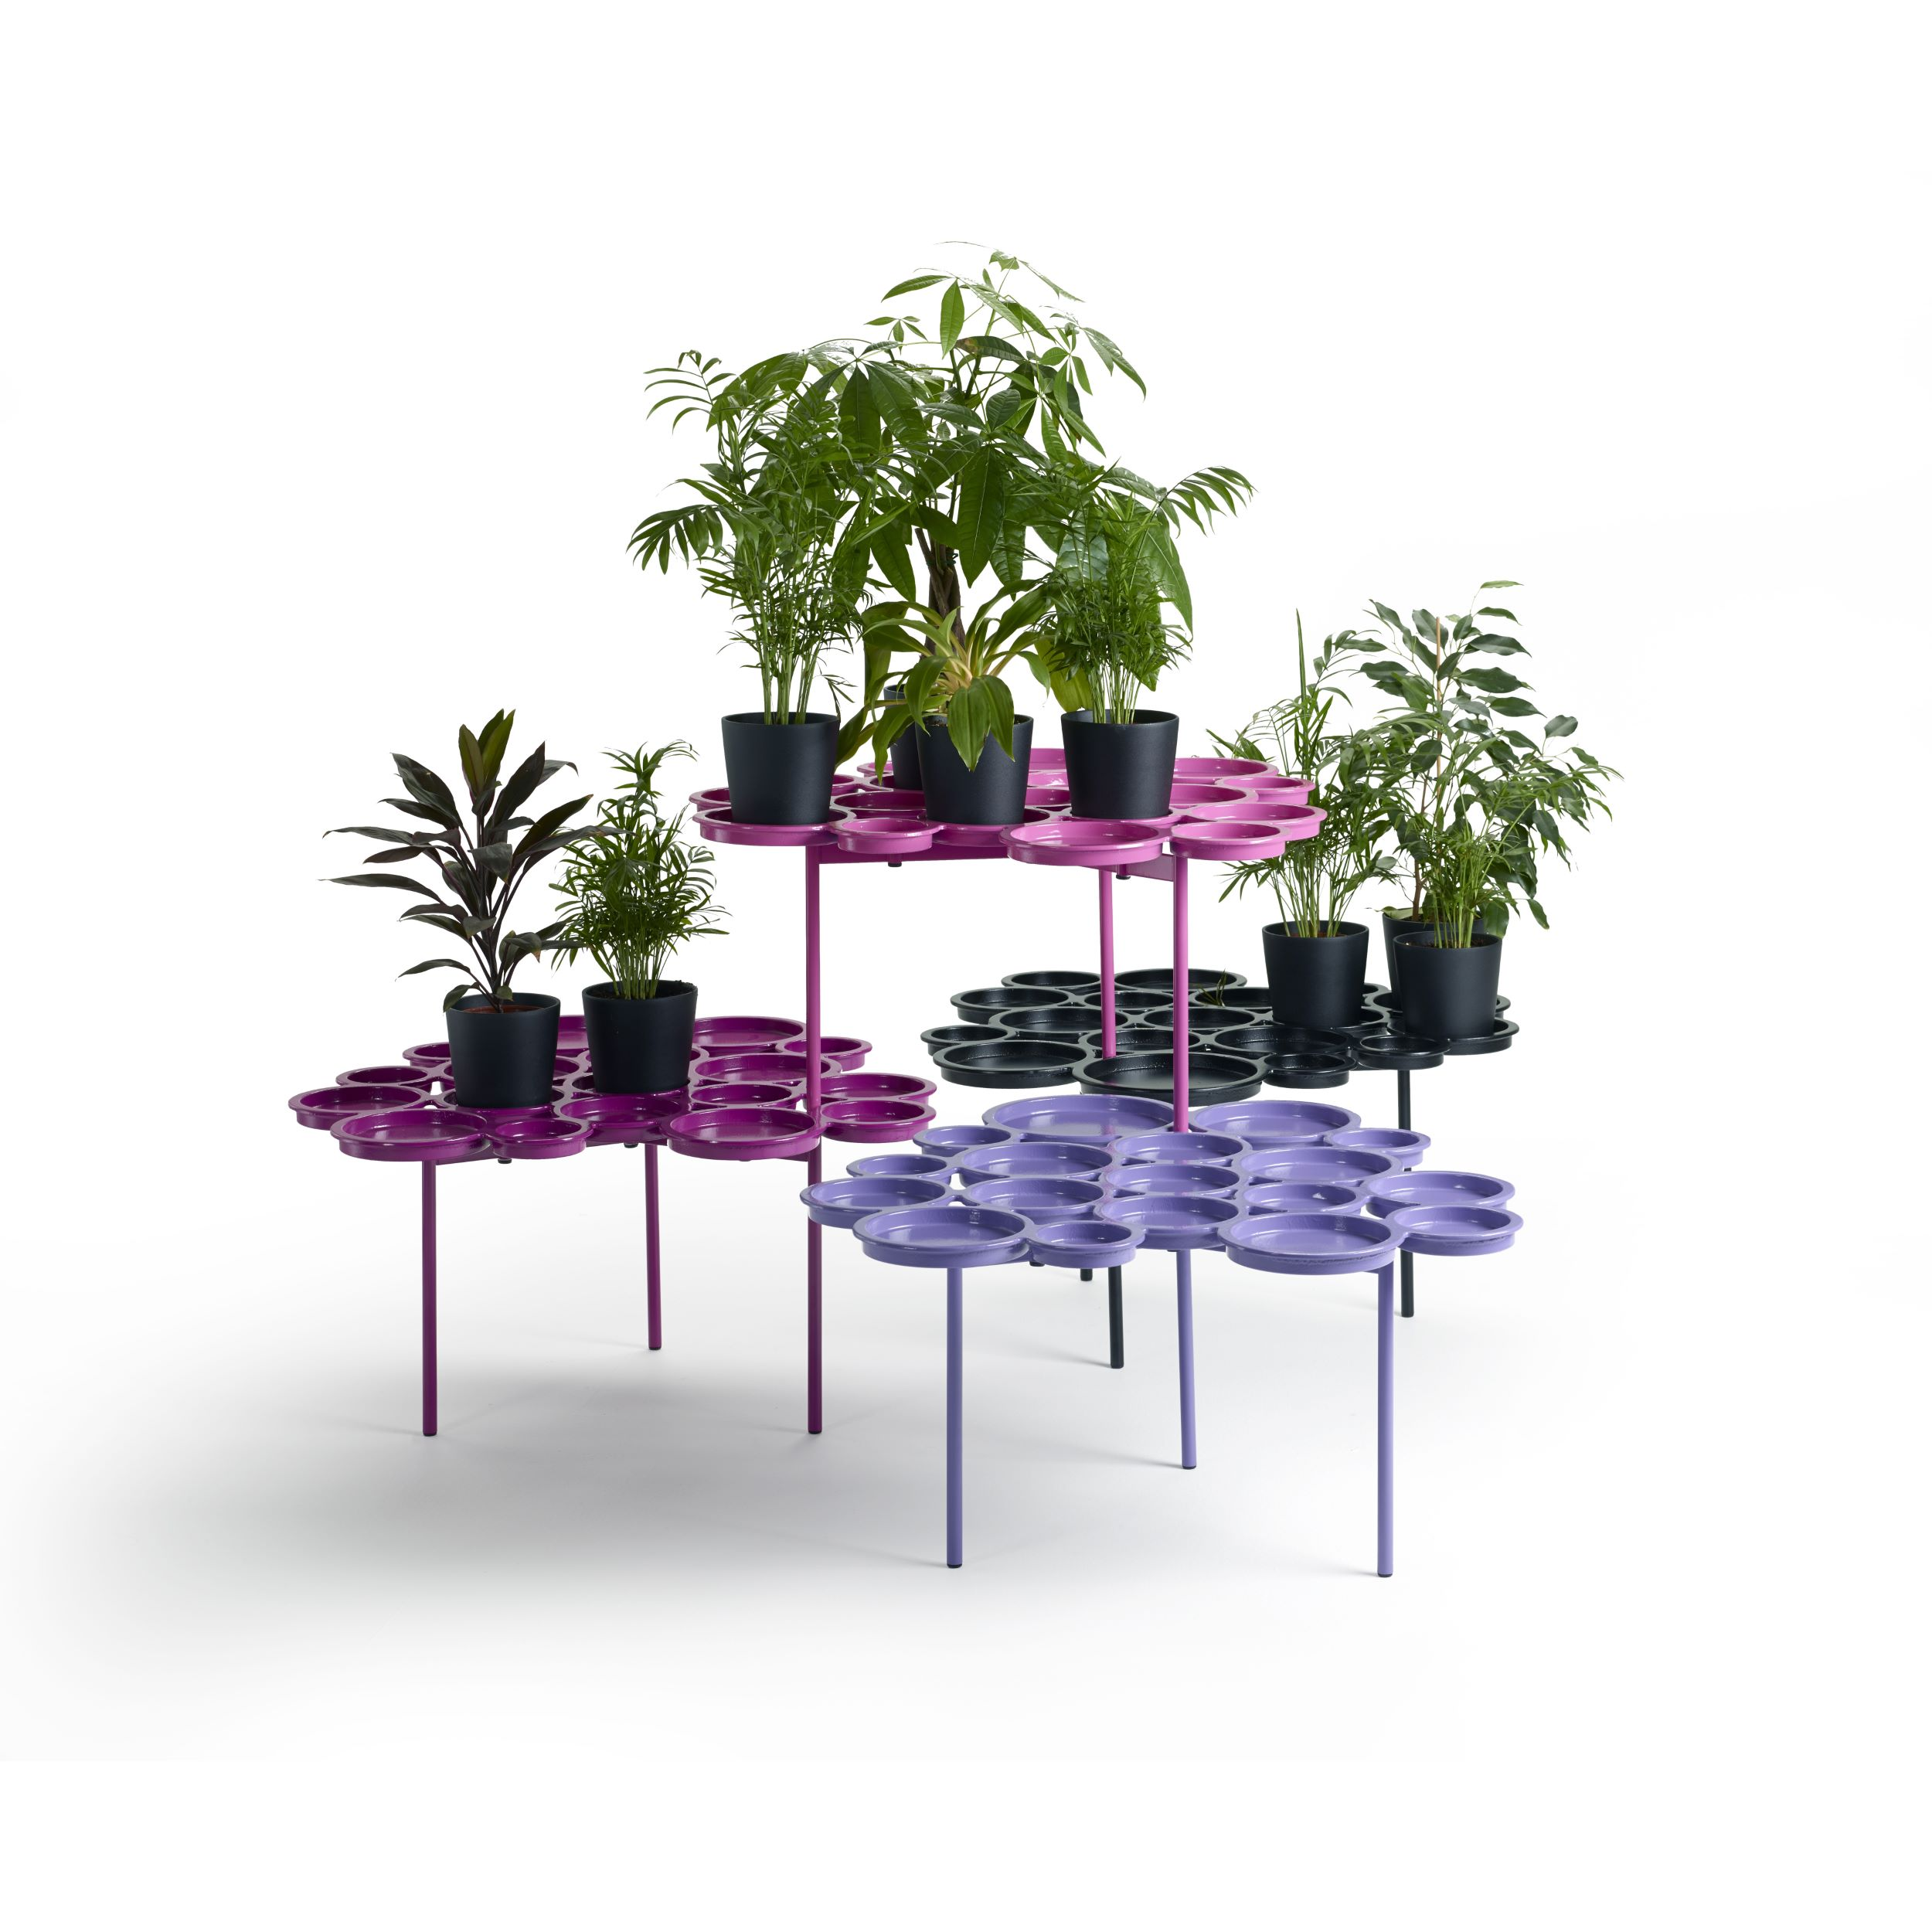 GREEN-PADS-O2asis-Luca-Nichetto-offecct-620001-06-2144